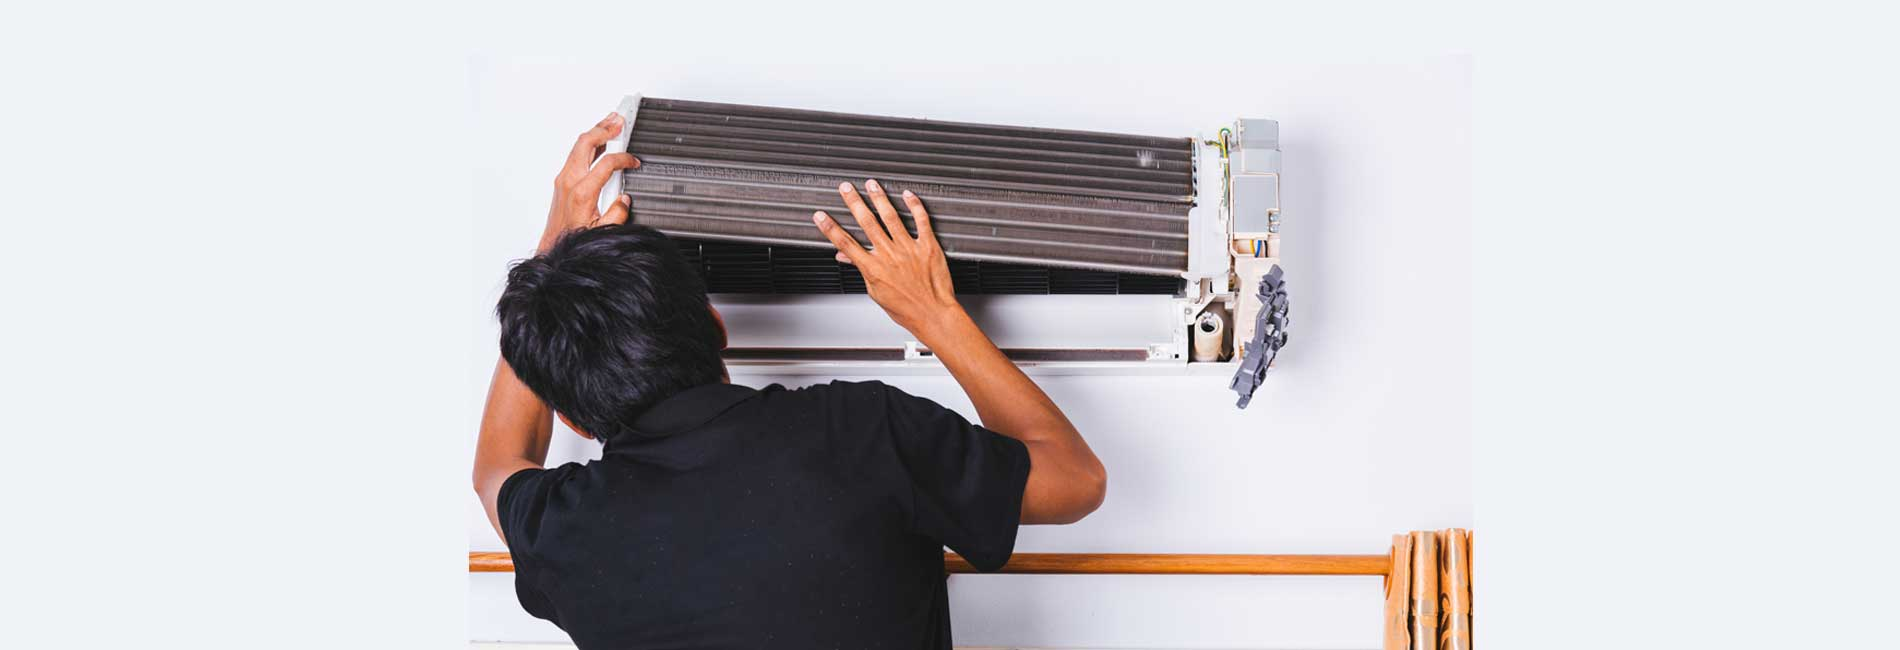 Split AC Uninstallation in Ponneri